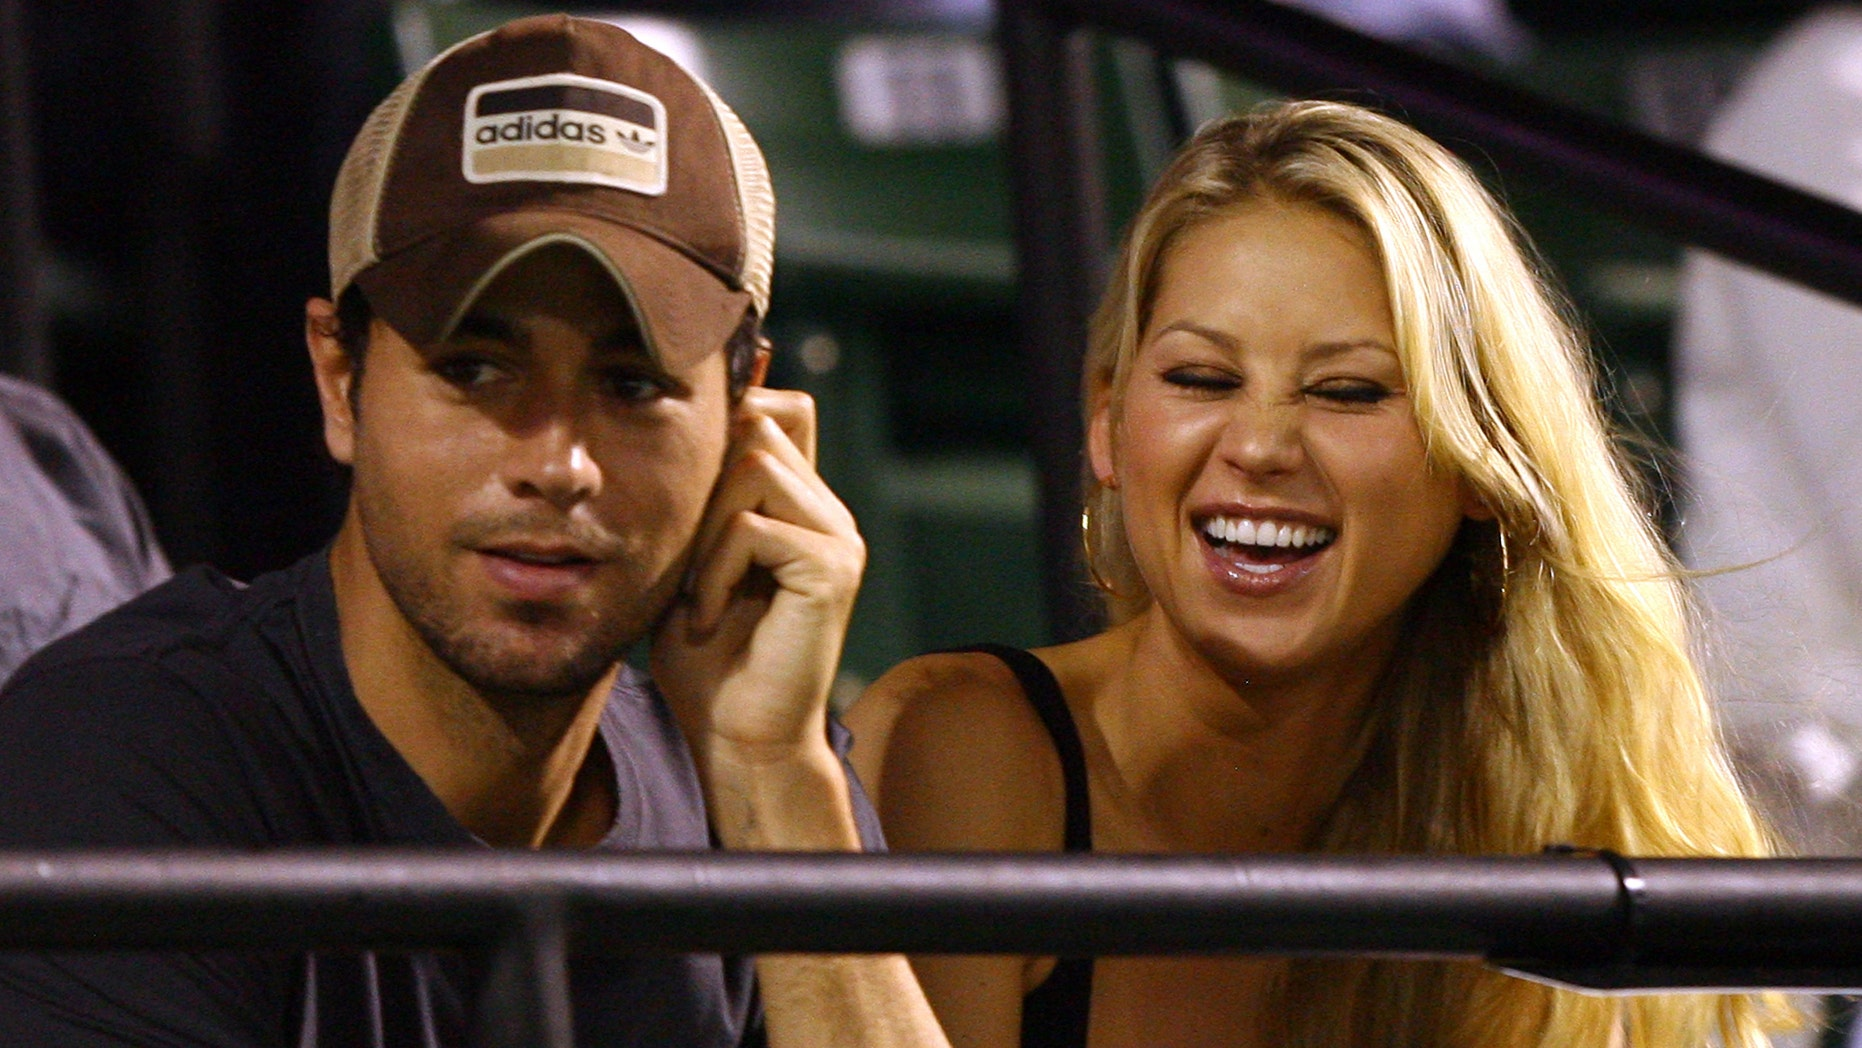 Enrique Iglesias told how Anna Kournikova differs from all his former girlfriends